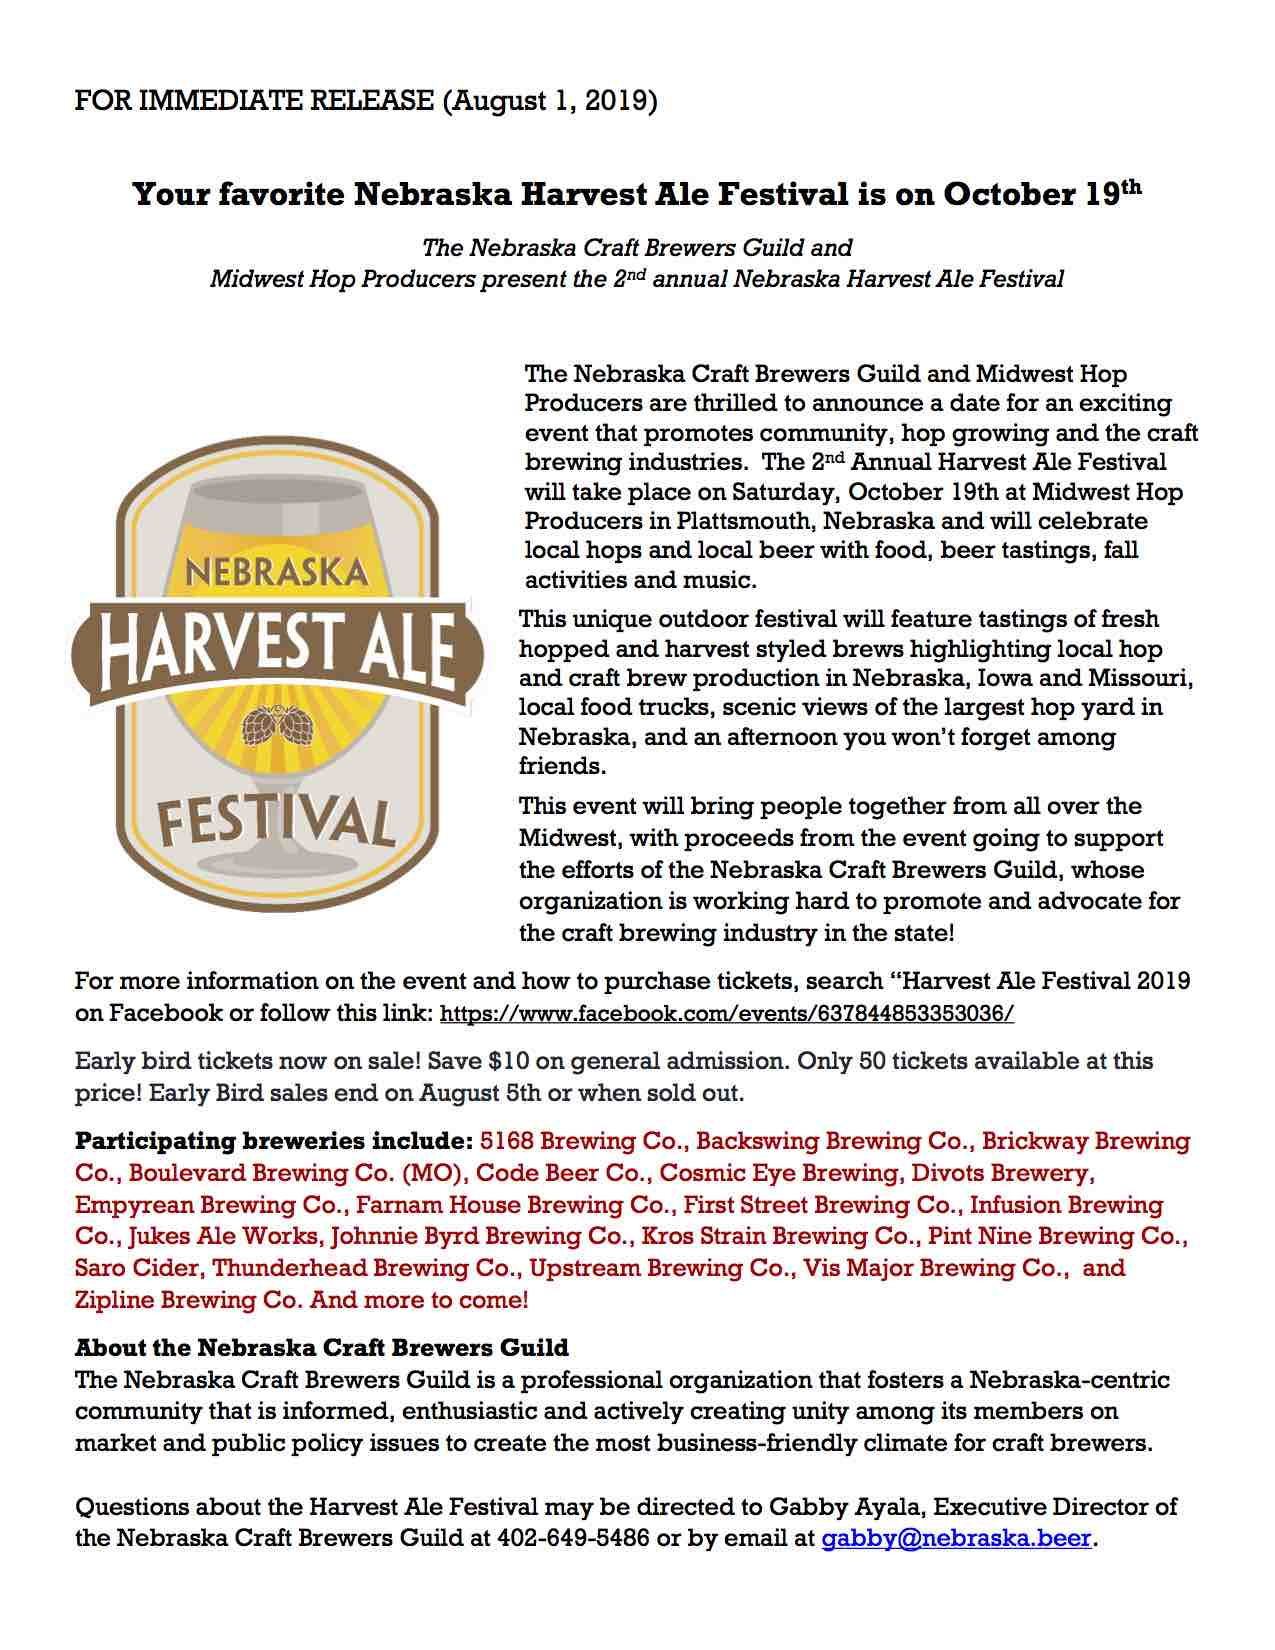 Harvest Ale 2019 Press Release 8.1.2019